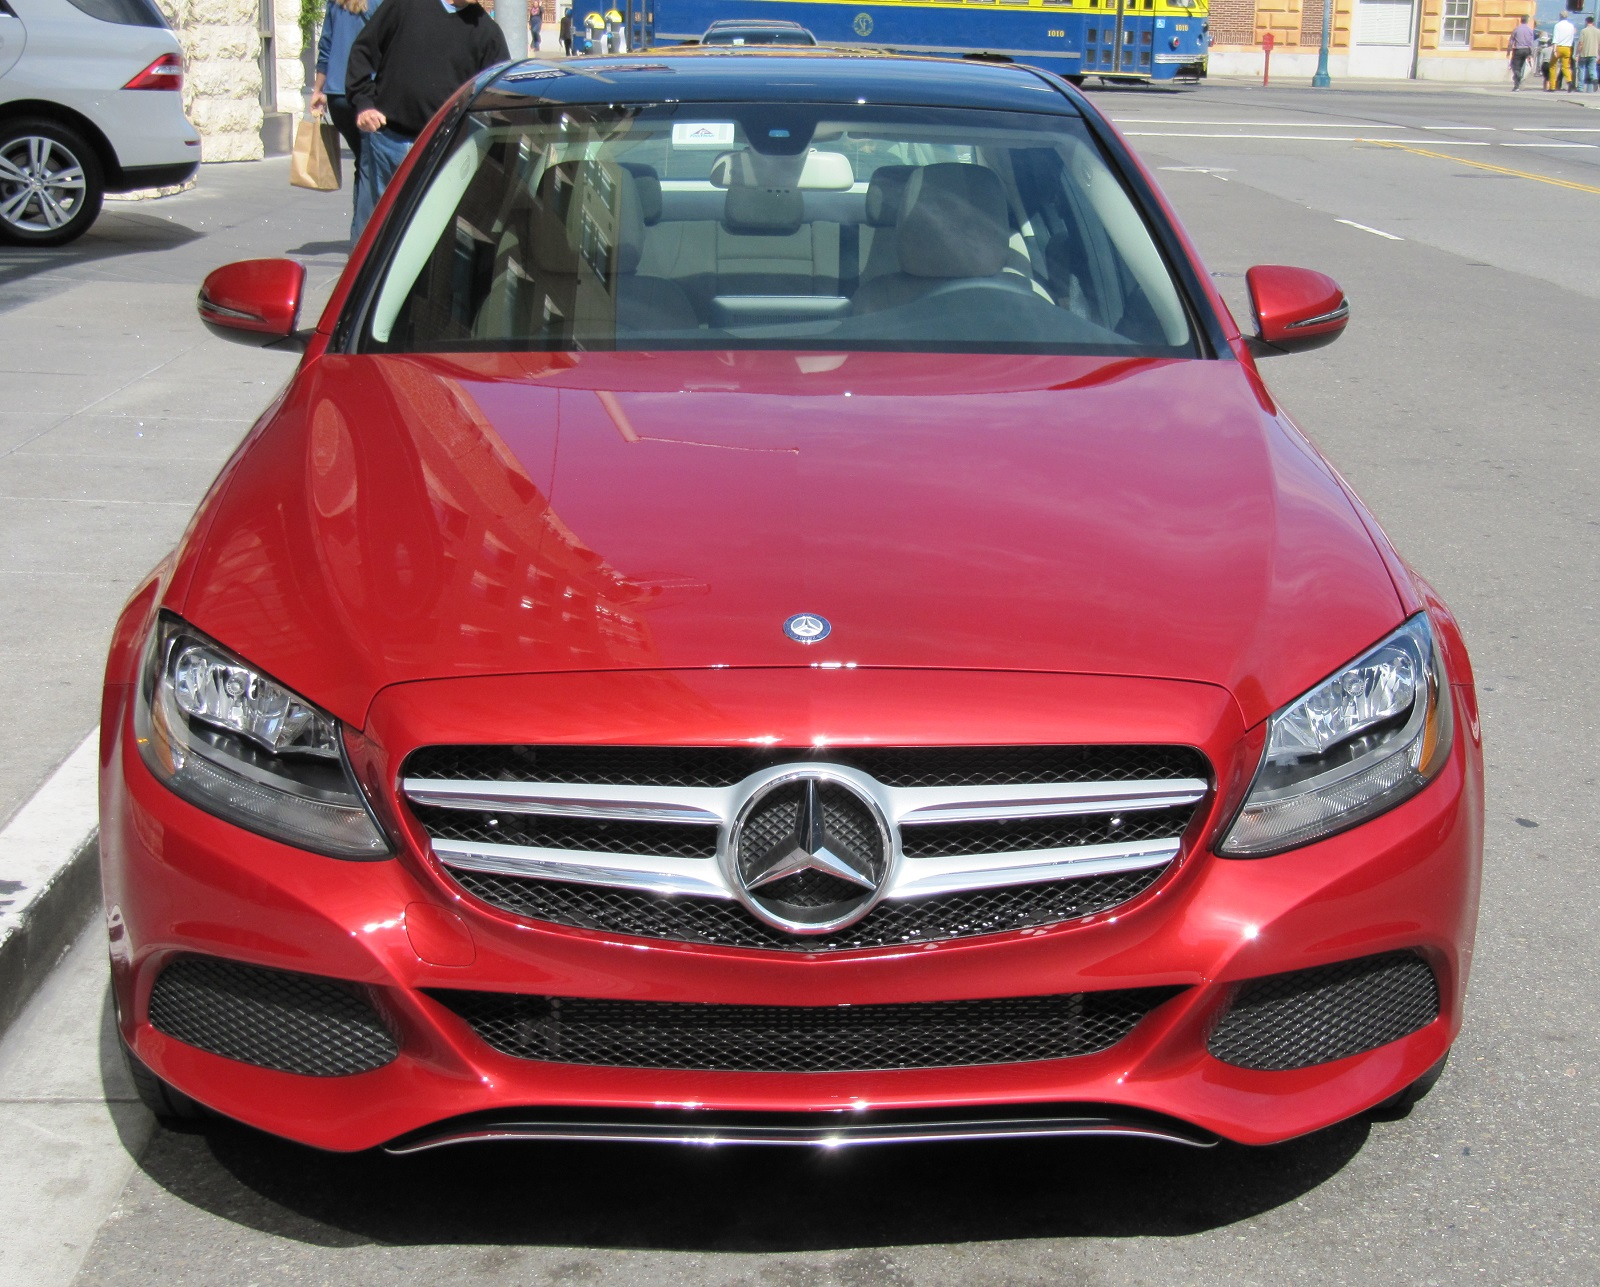 Diesel cars dwindle as Mercedes-Benz C300d is pulled from U.S. ...